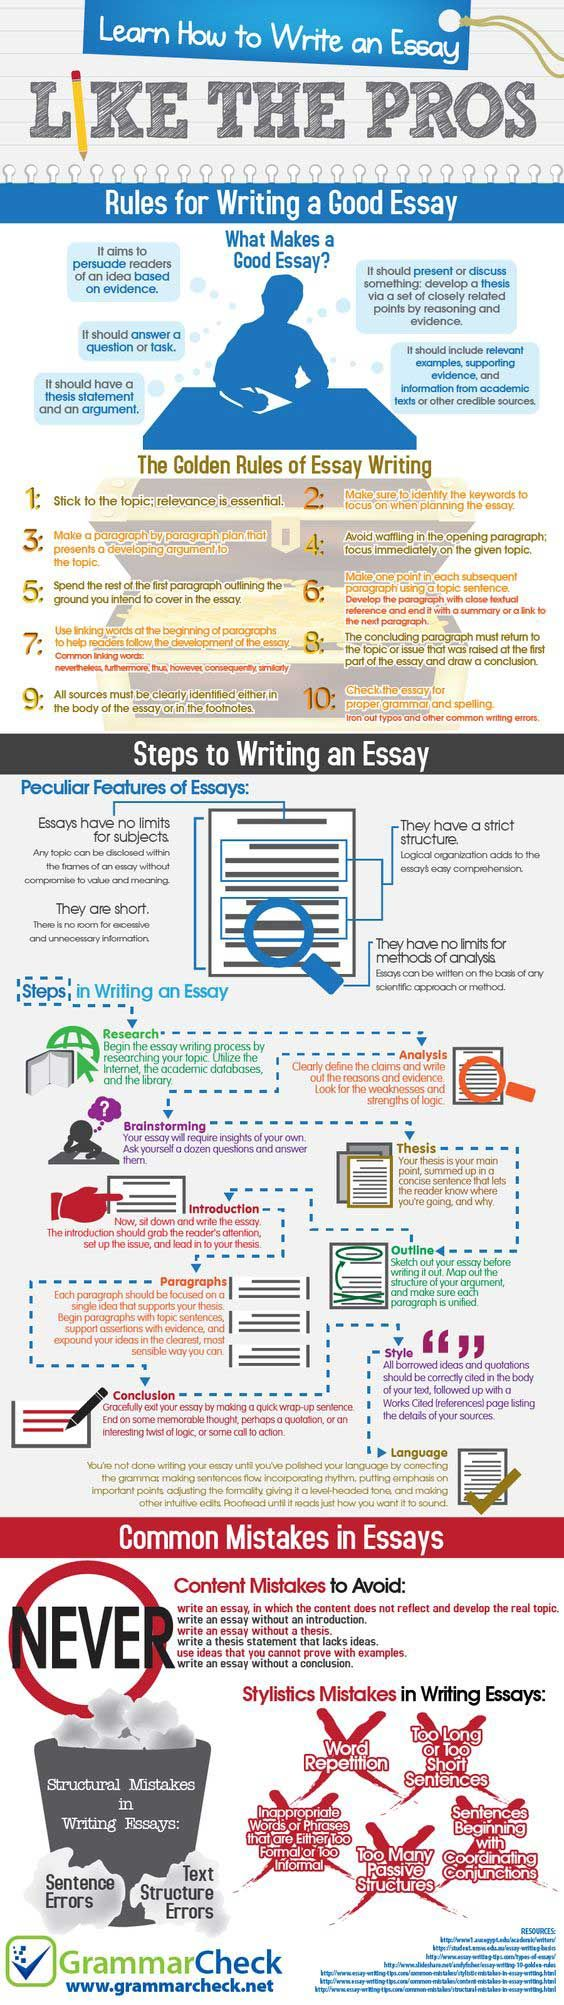 simple living high thinking essay ideas about writing an essay  ideas about writing an essay essay writing 18 infographics that will teach you how to write essay thinking